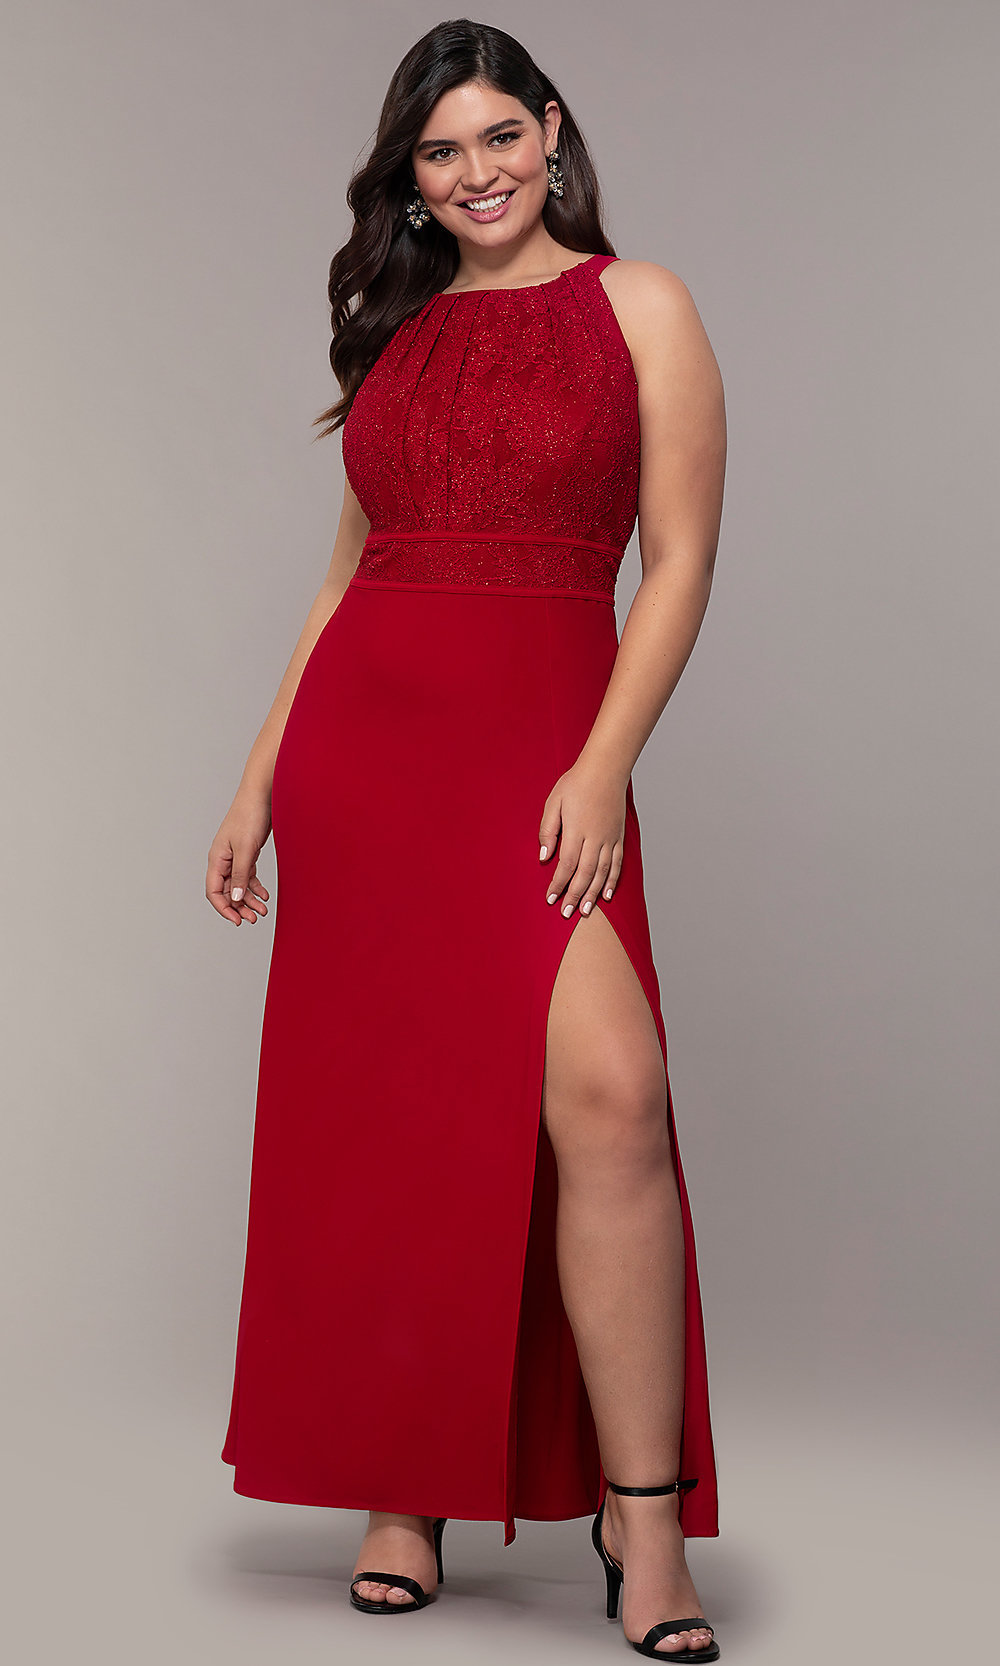 Lace-Bodice Long Plus-Size Formal Prom Dress